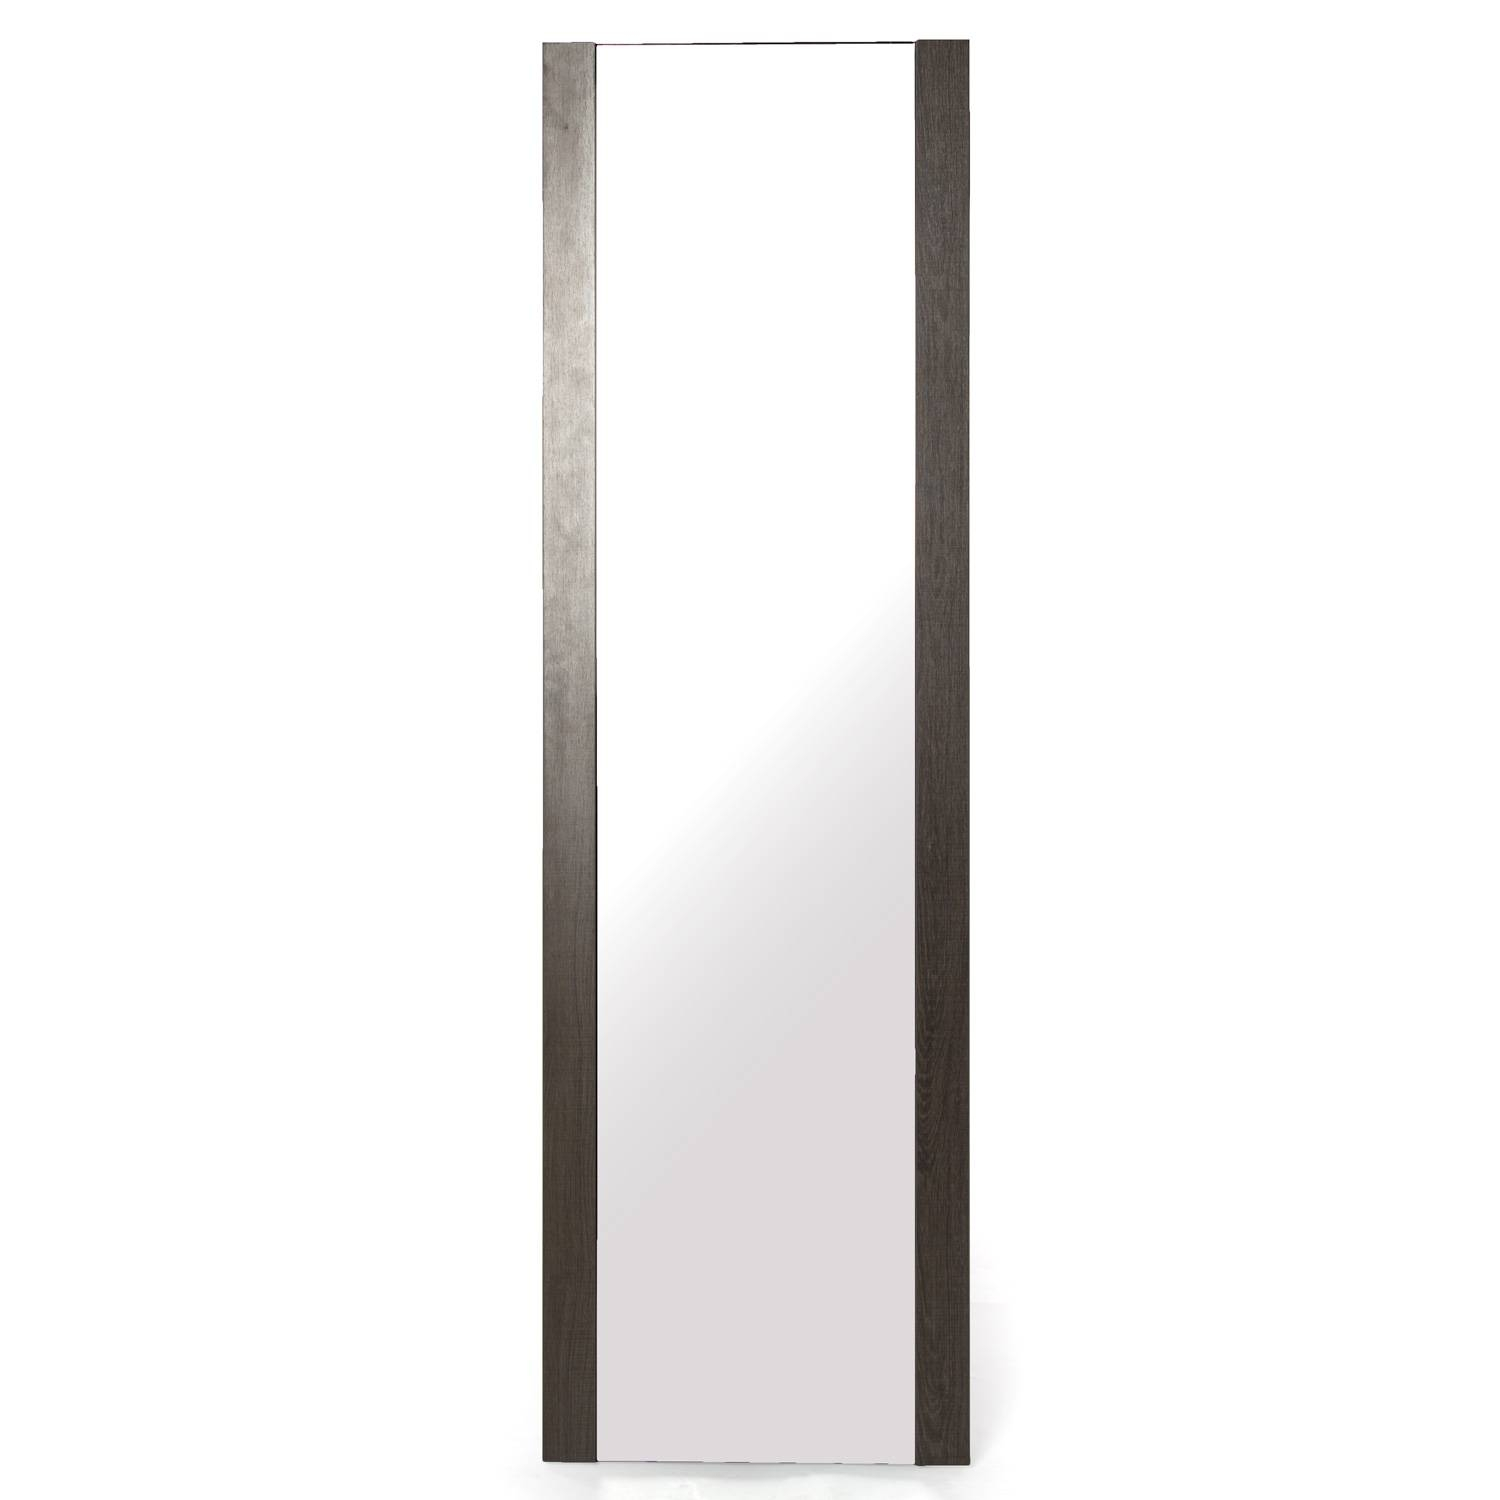 Modern Bedroom Free Standing Floor Mirror with Modern Free Standing Mirrors (Image 11 of 15)